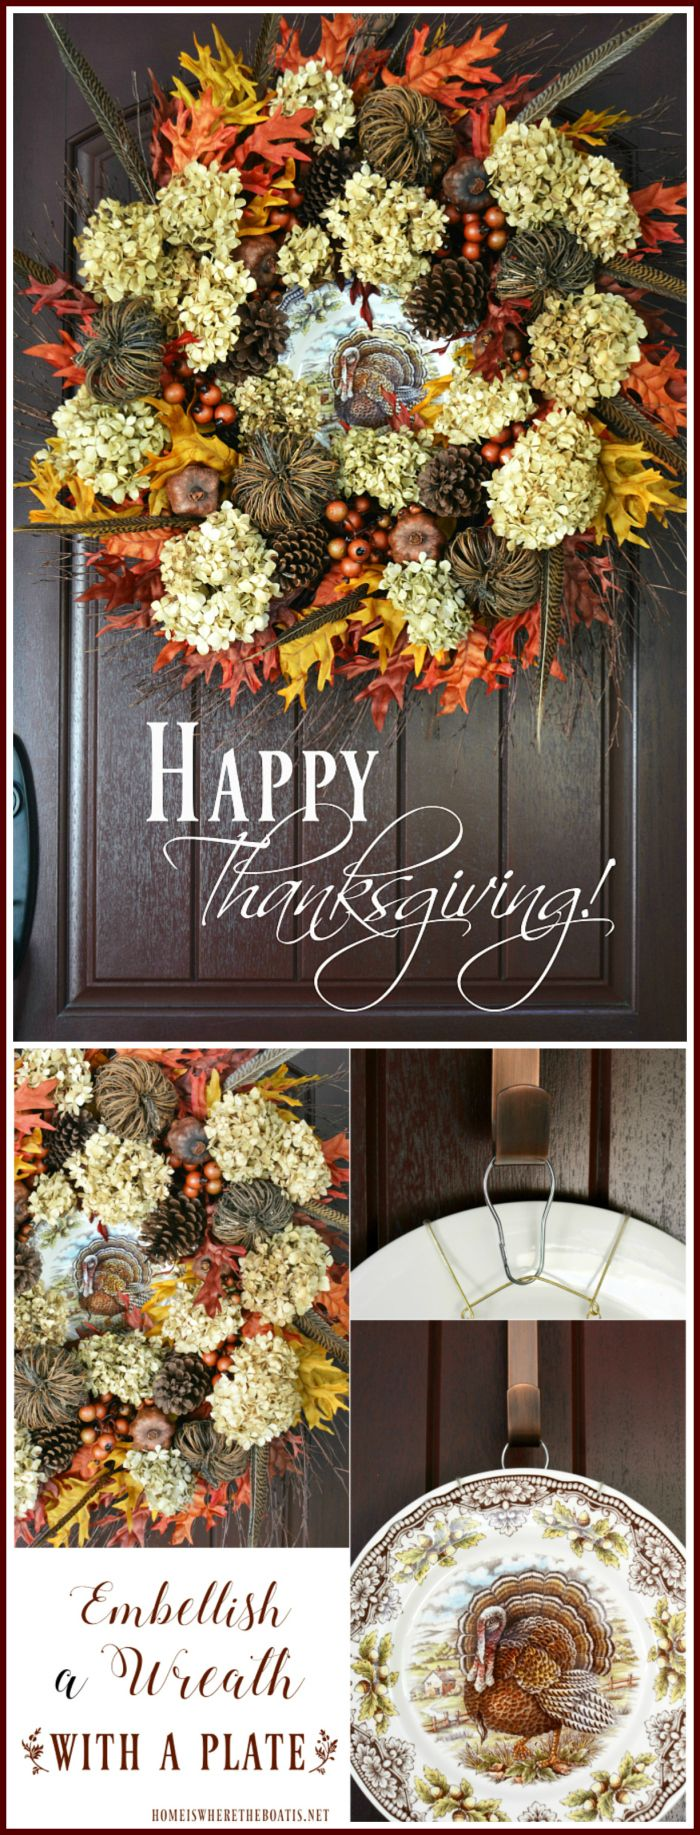 I'm ready for all things turkey with Thanksgiving around the corner! I gathered my collection of turkey plates for a little tabletop fun and seasonal display in the Potting Shed. It will soon…